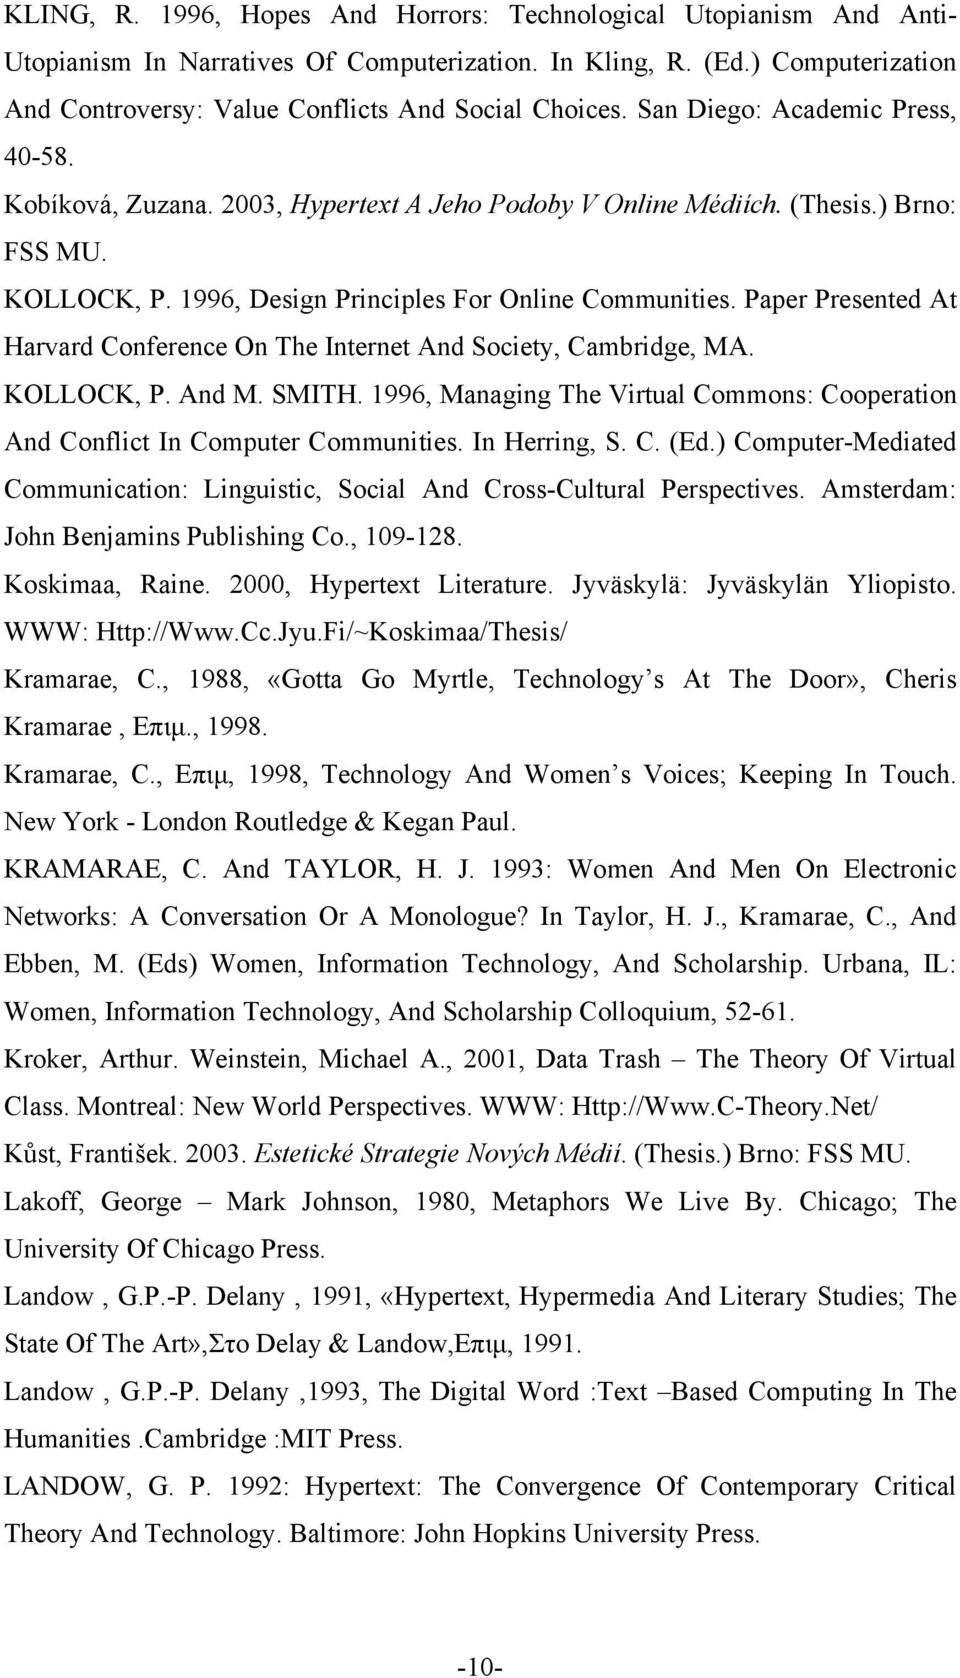 KOLLOCK, P. 1996, Design Principles For Online Communities. Paper Presented At Harvard Conference On The Internet And Society, Cambridge, MA. KOLLOCK, P. And M. SMITH.